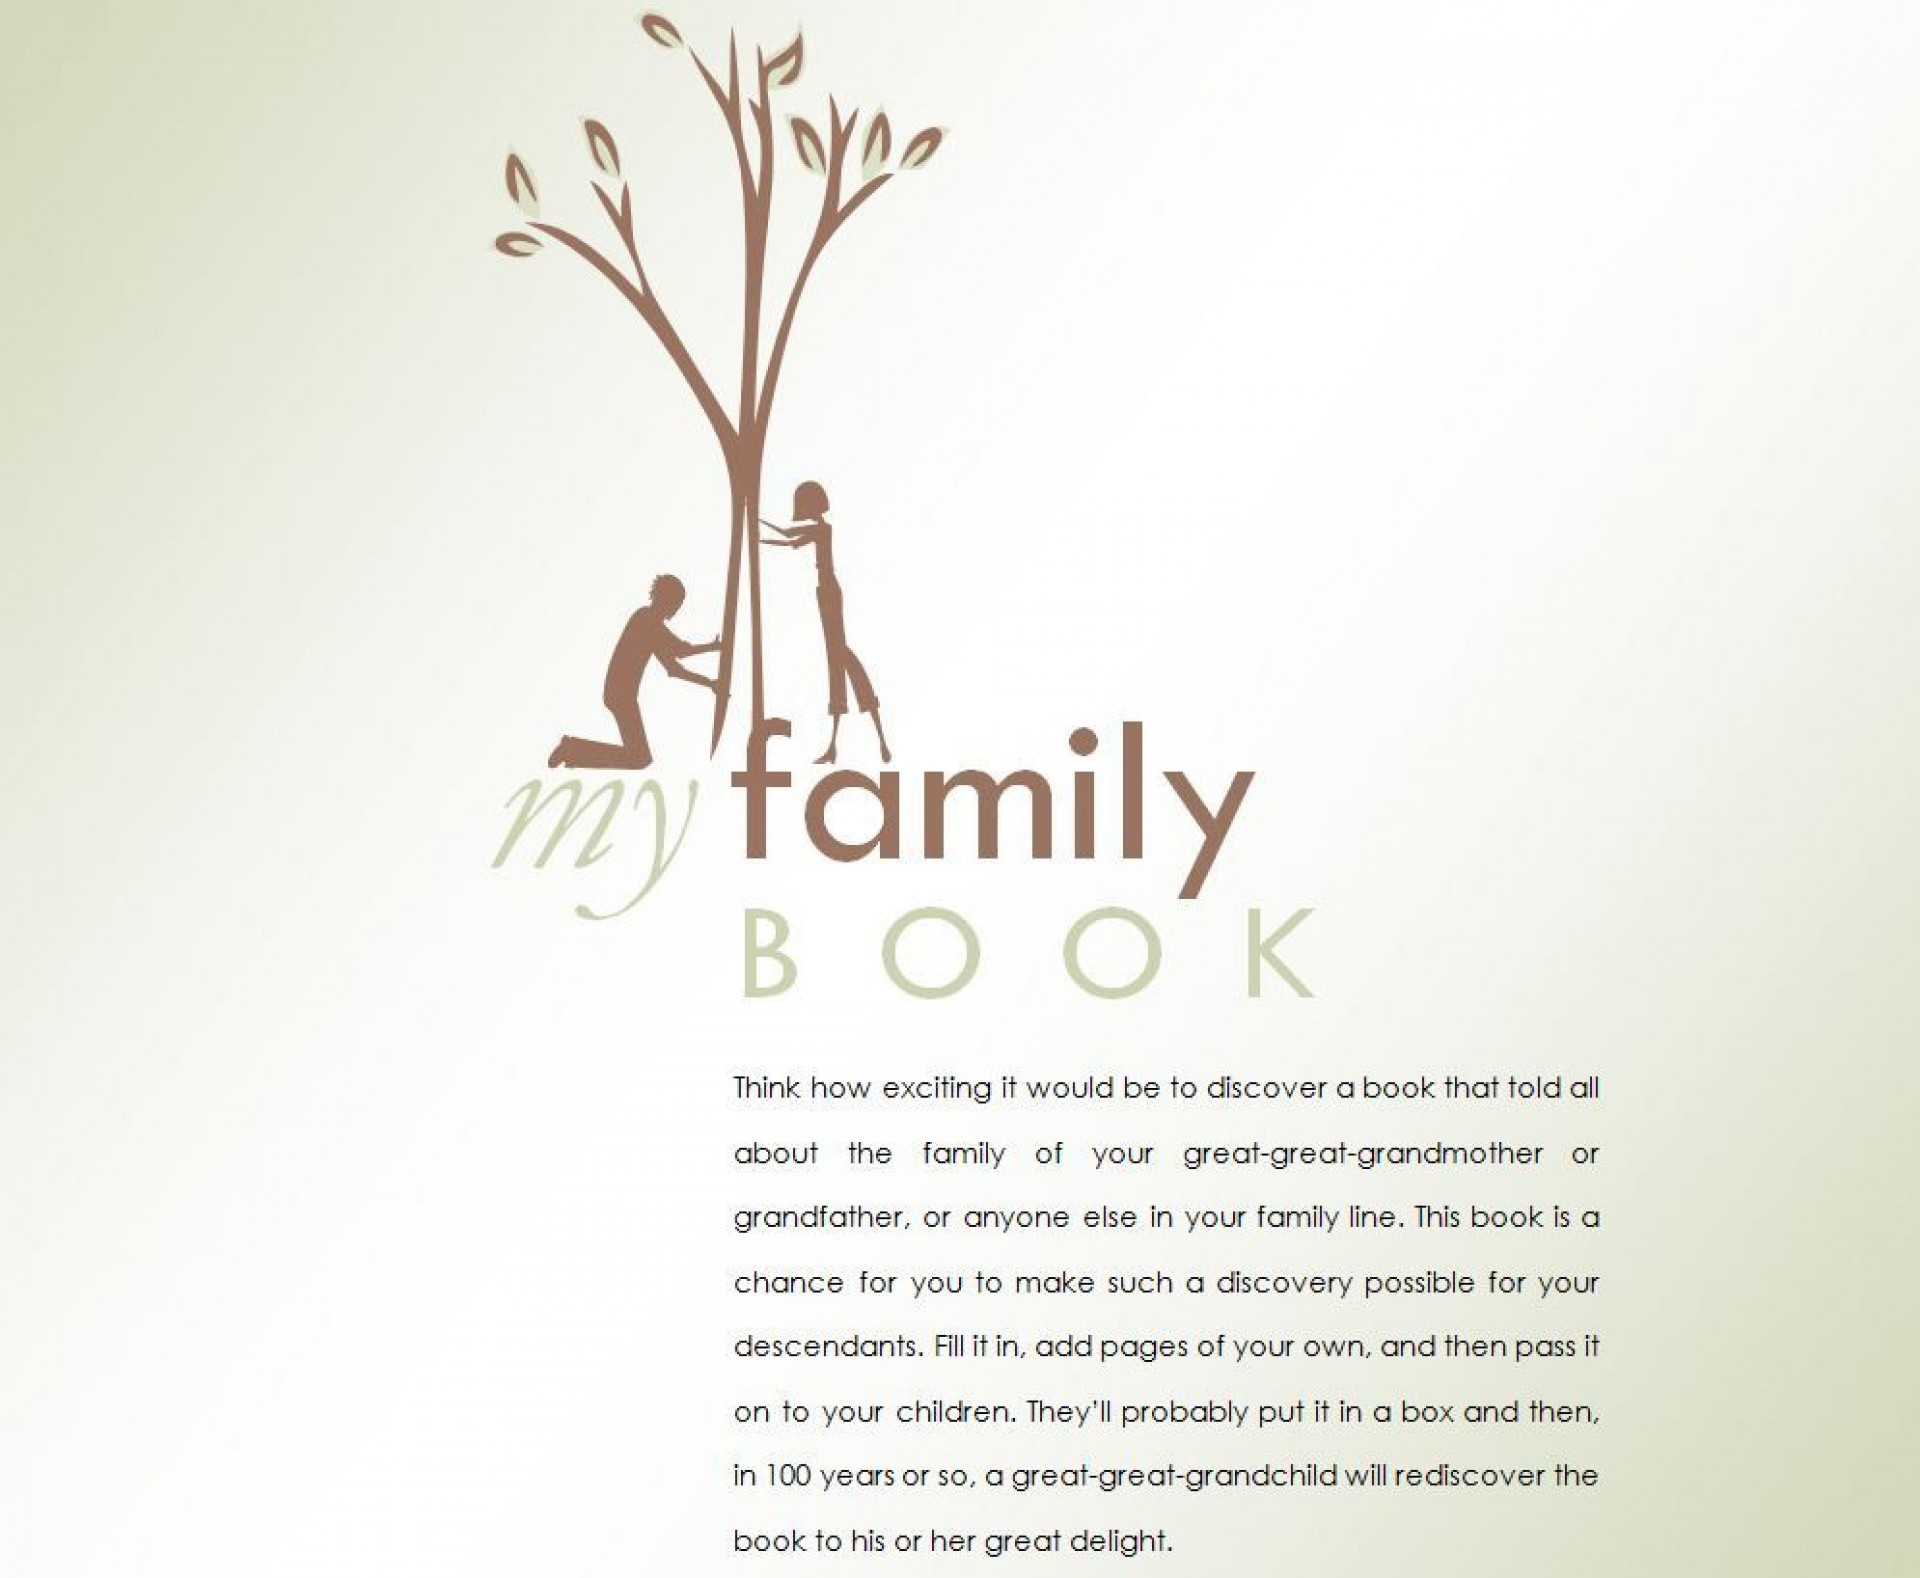 008 Wonderful Family Tree Book Template Word Design  History1920